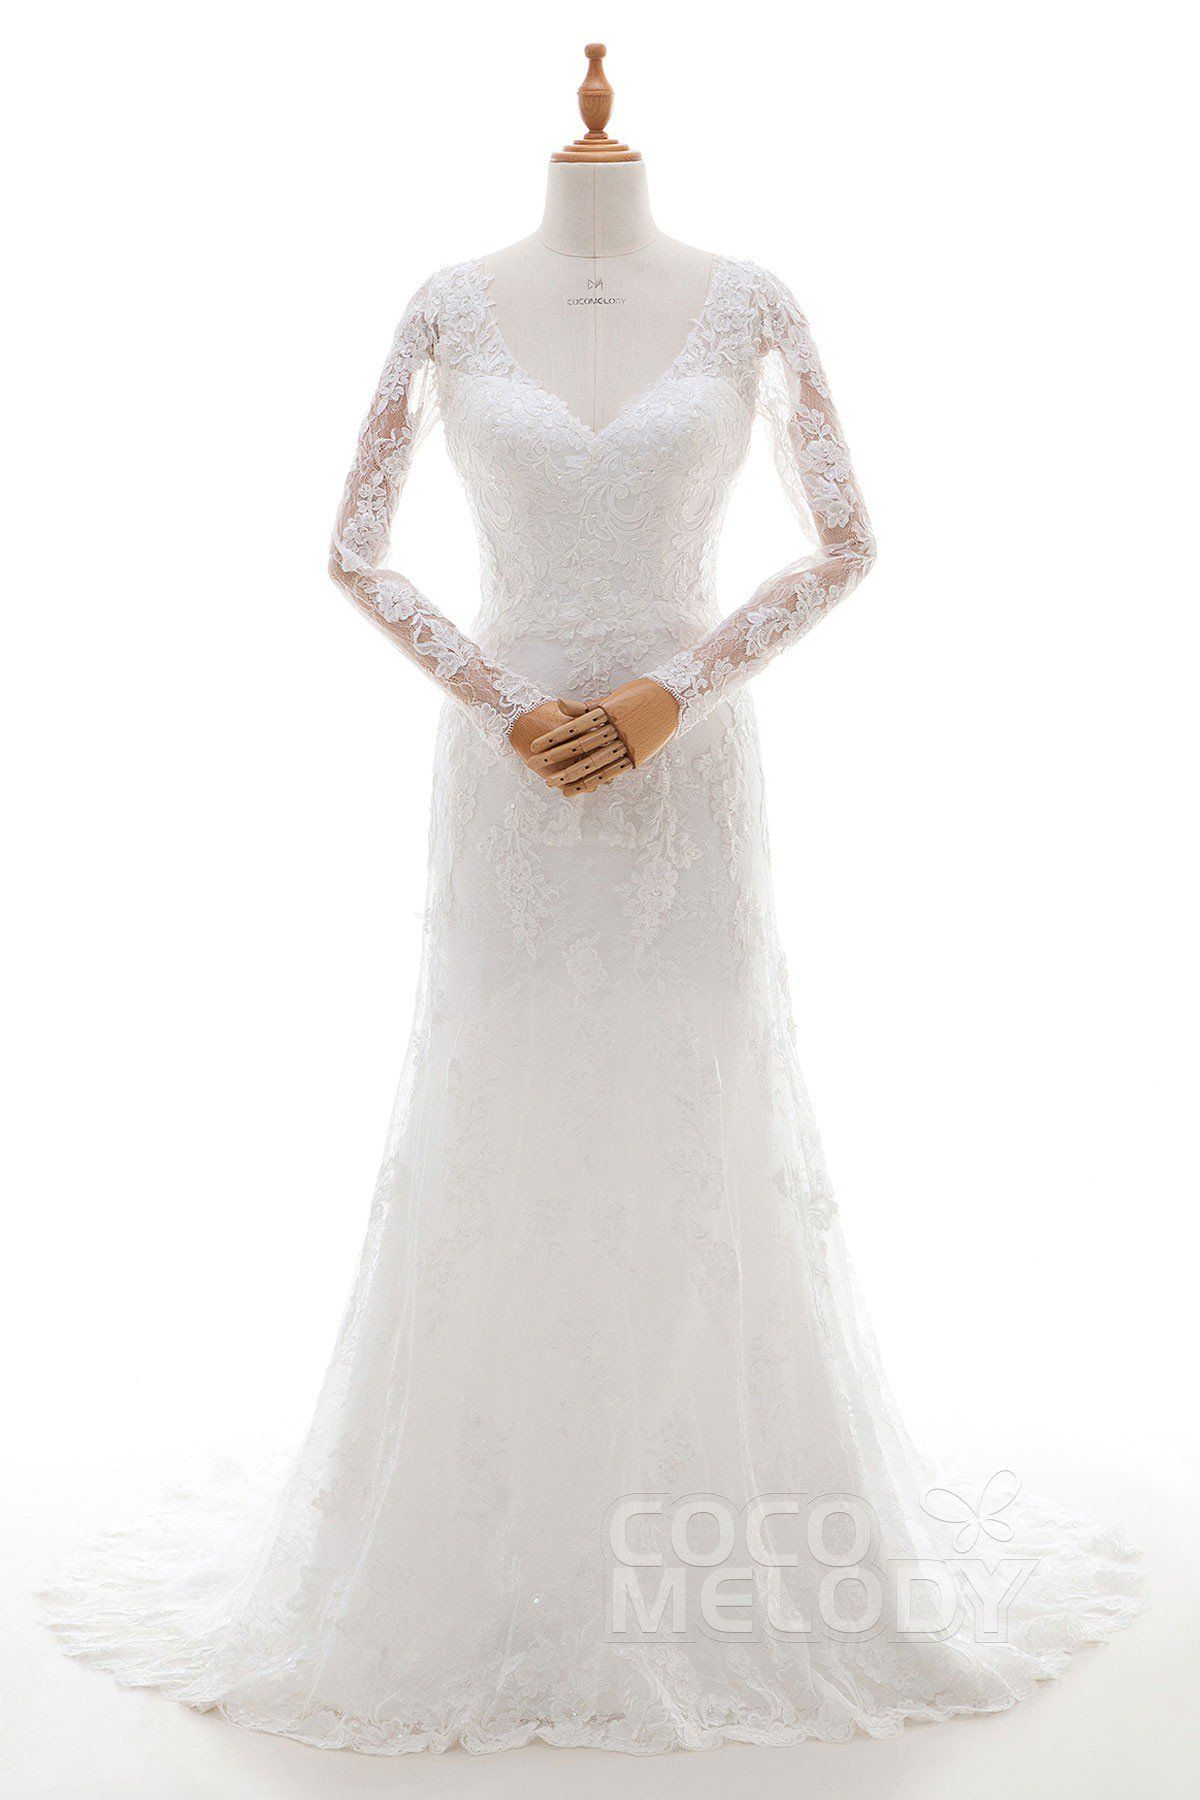 Chic sheathcolumn vneck natural court train tulle and lace ivory